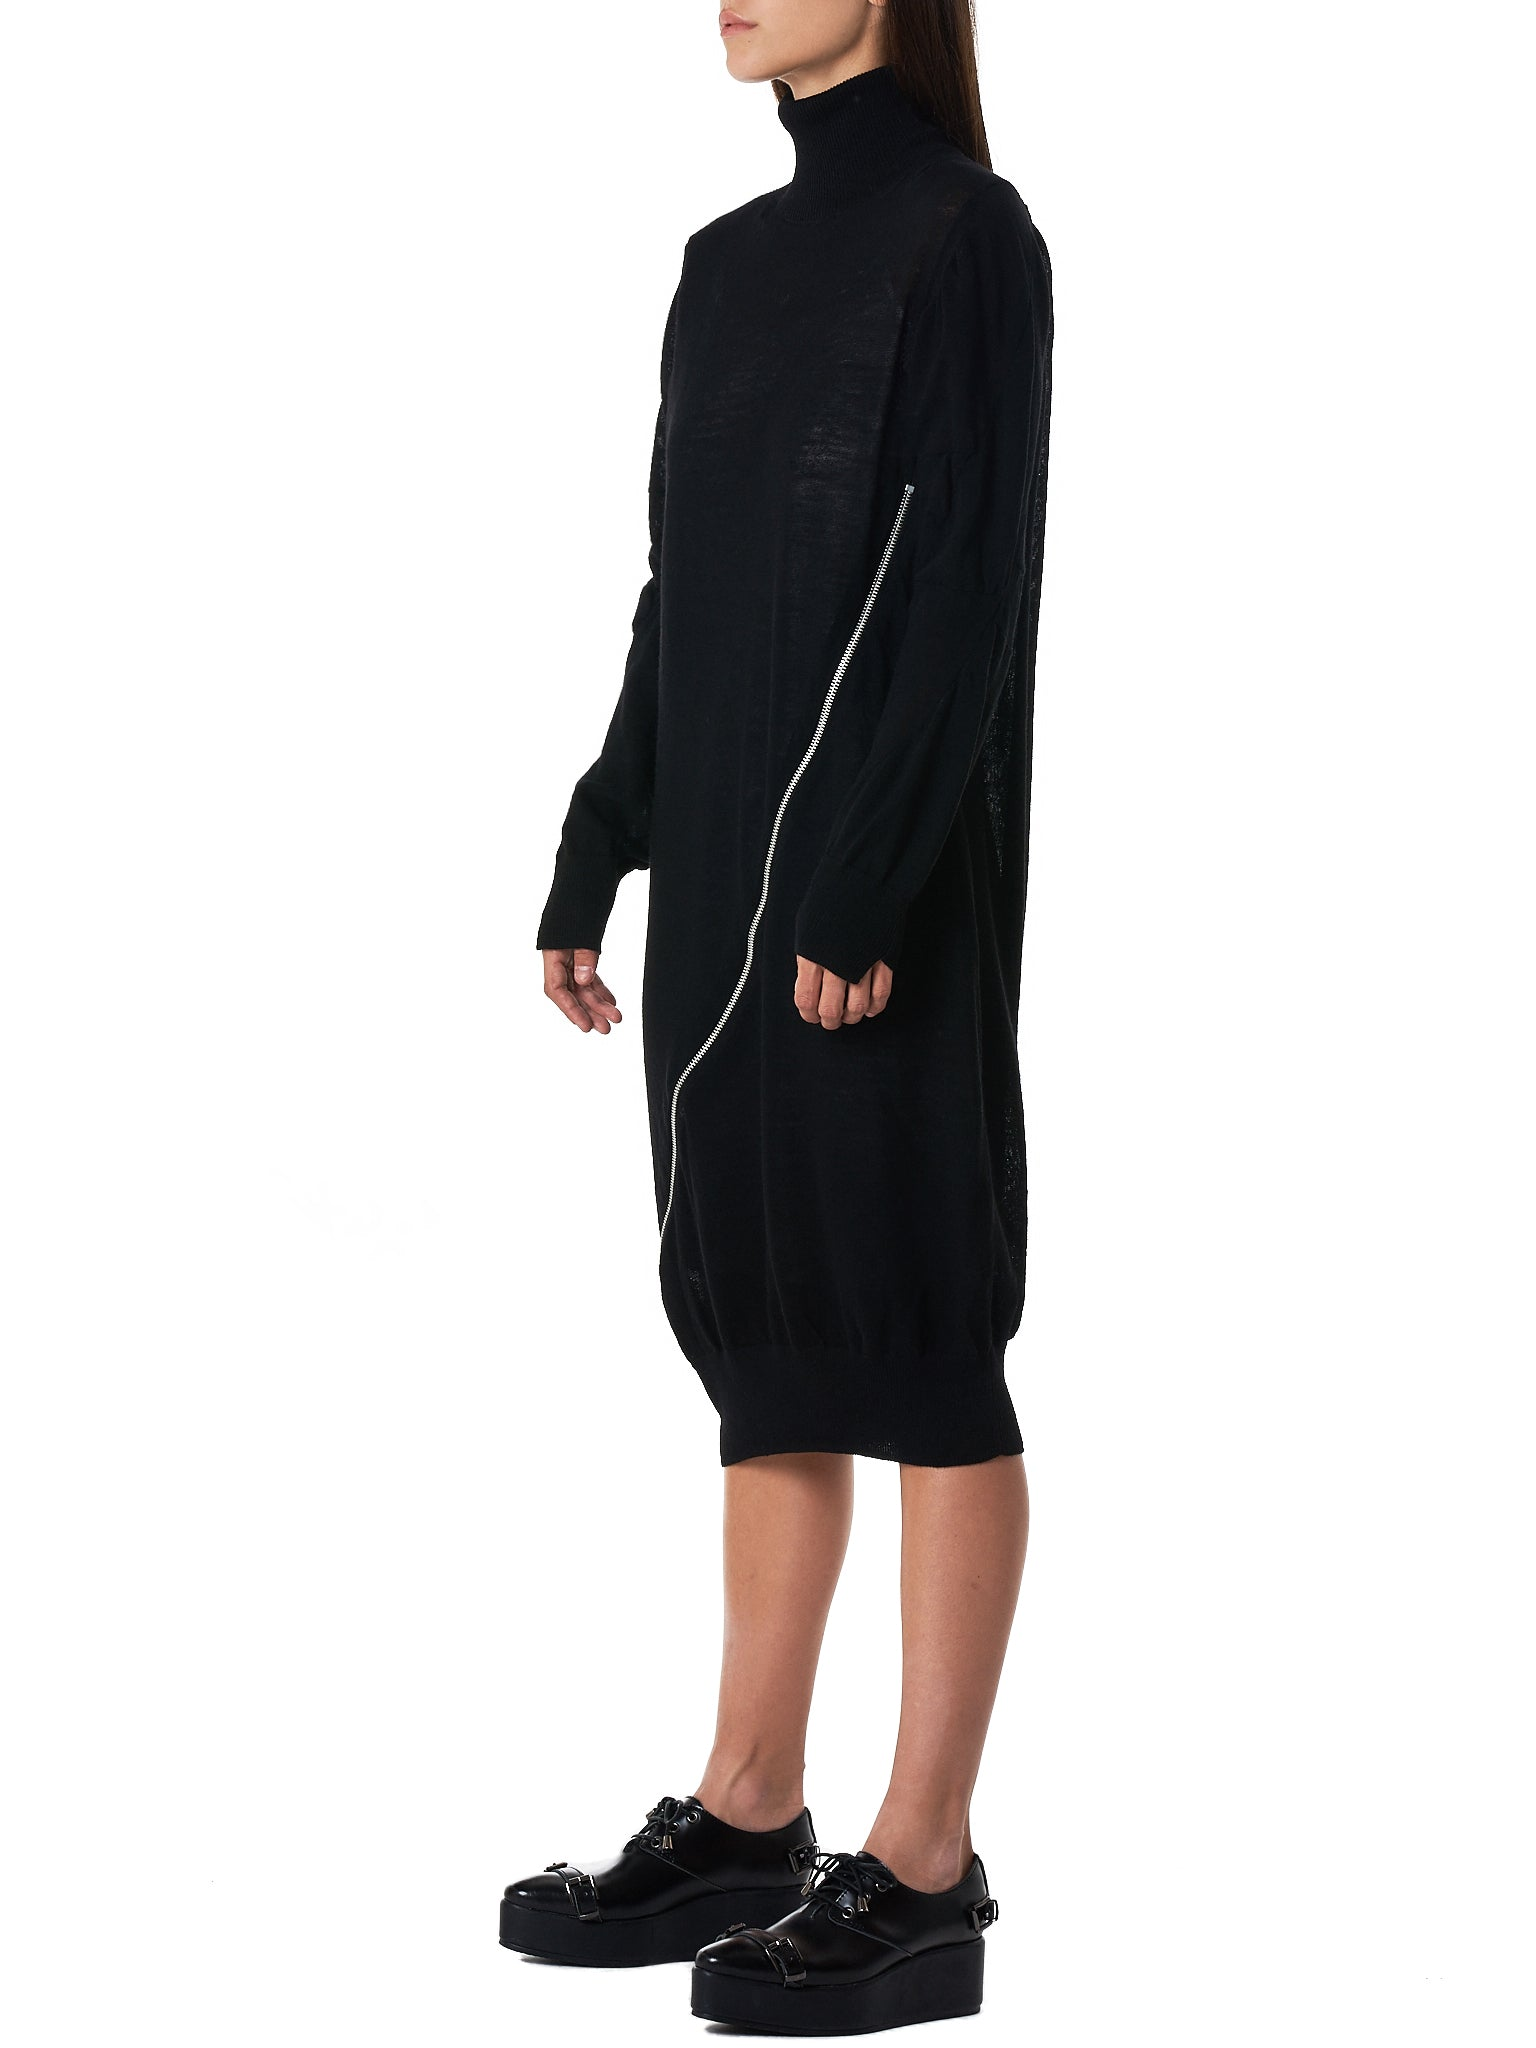 Sacai Turtleneck Dress - Hlorenzo Side